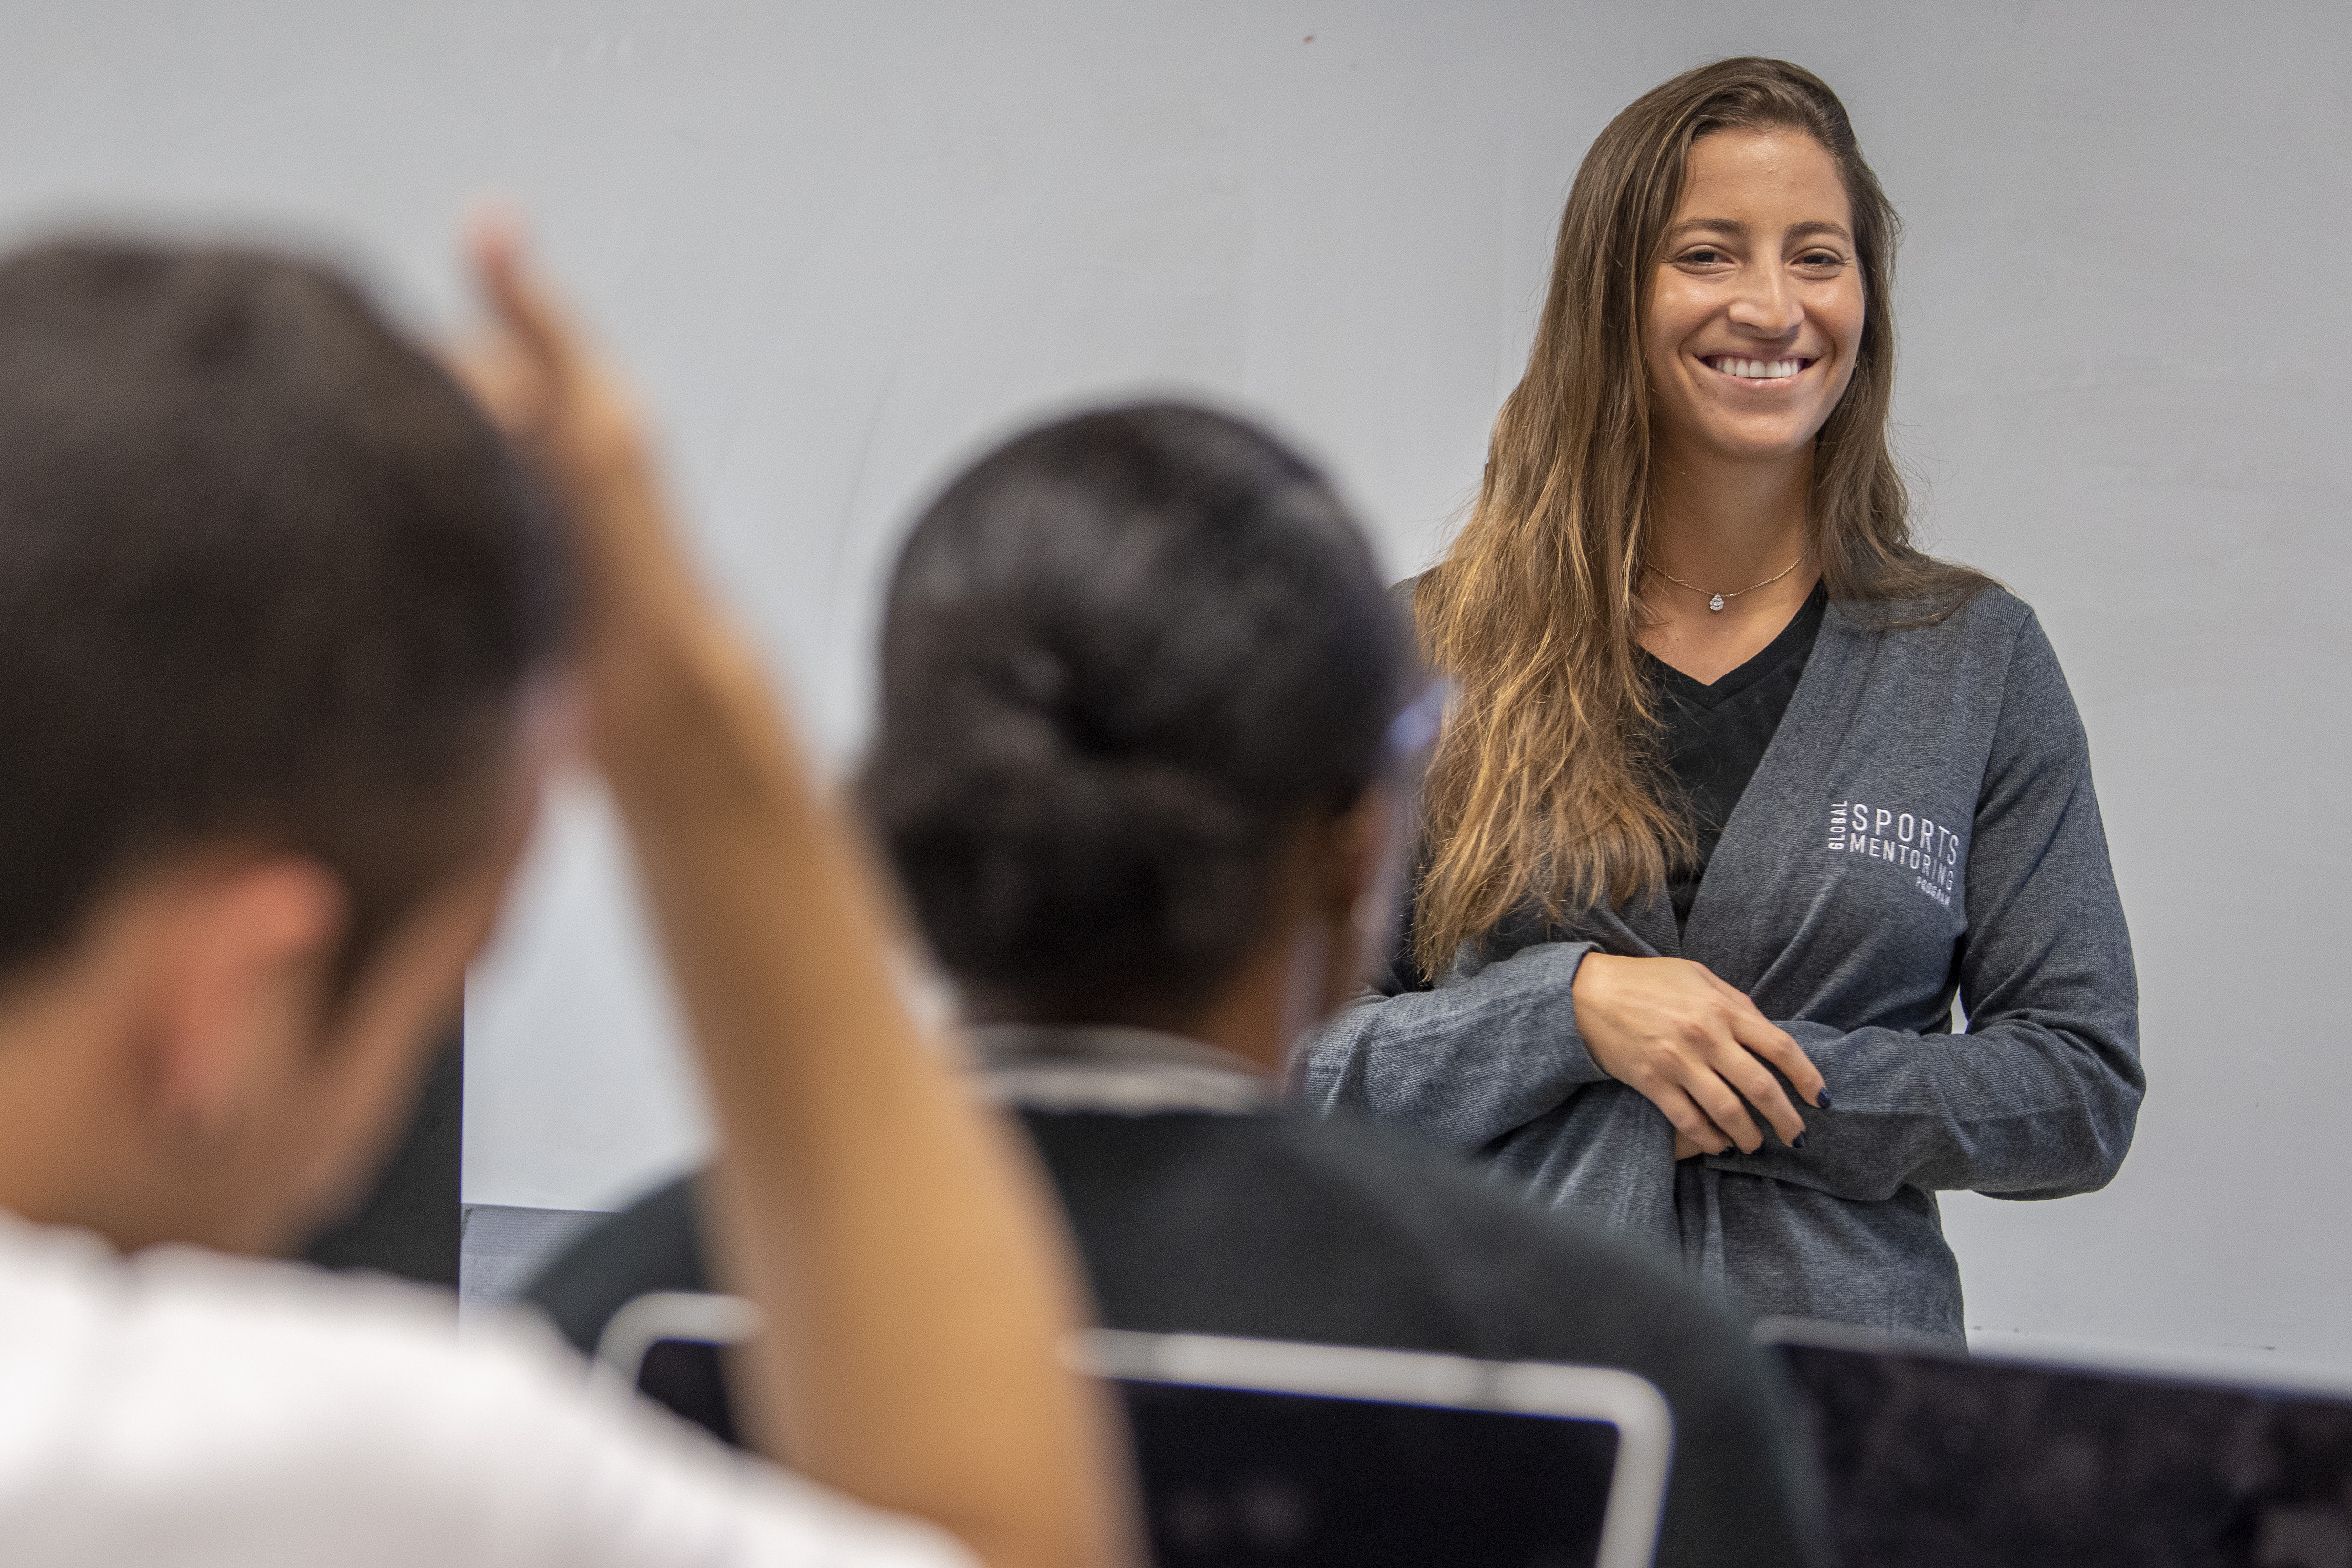 Karen Chammas from Lebanon is visiting UConn's Sport Management faculty as part of a Global Mentorship Program. (Sean Flynn/UConn Photo)